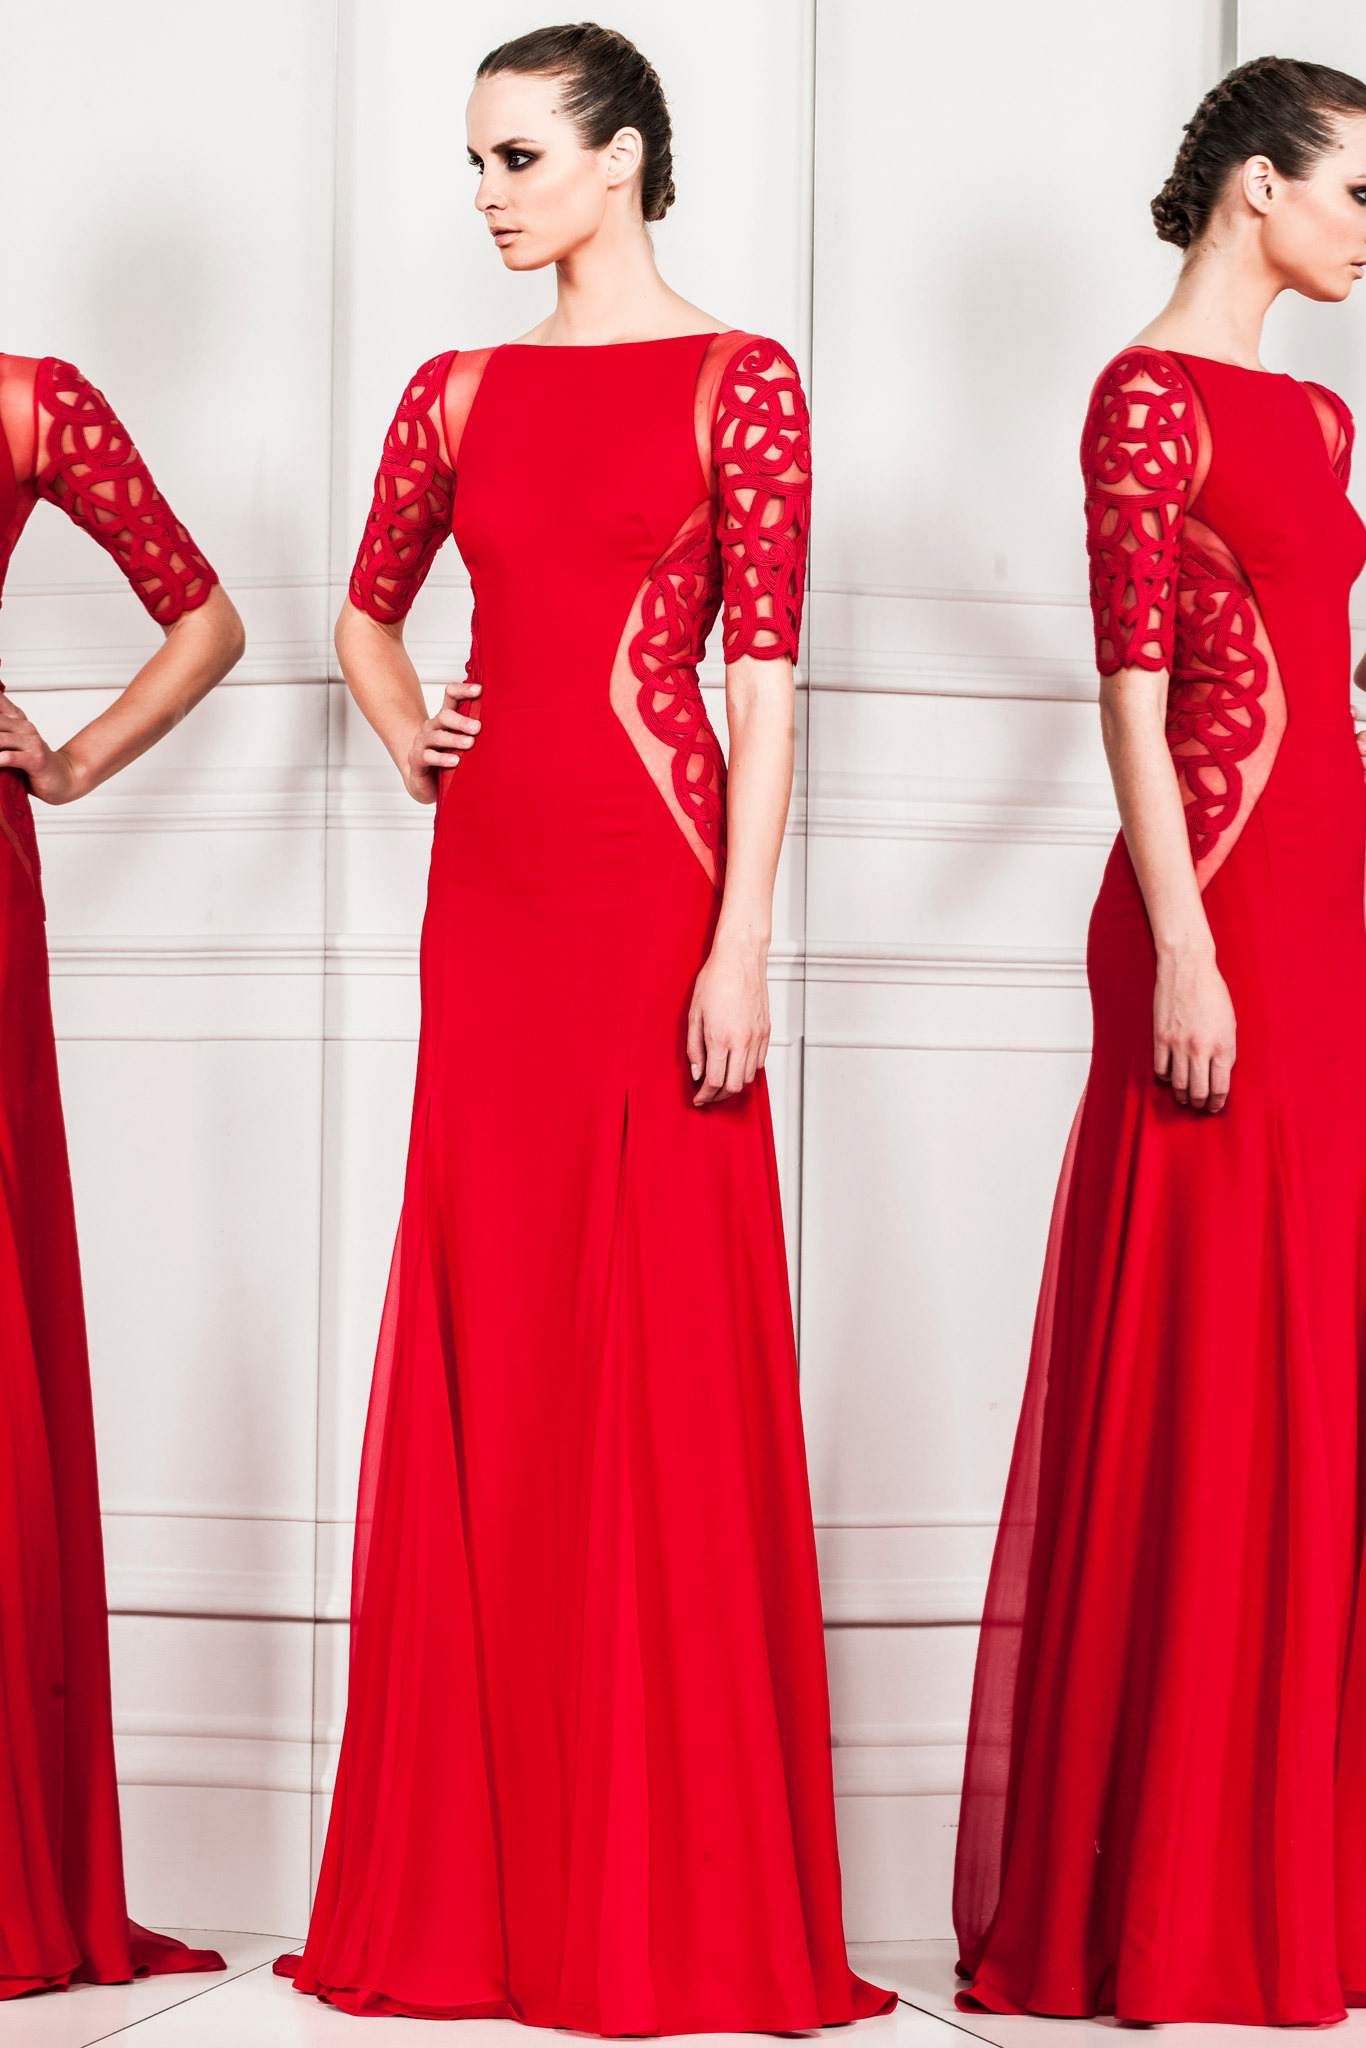 Zuhair_Murad_Resort 2014 (1)